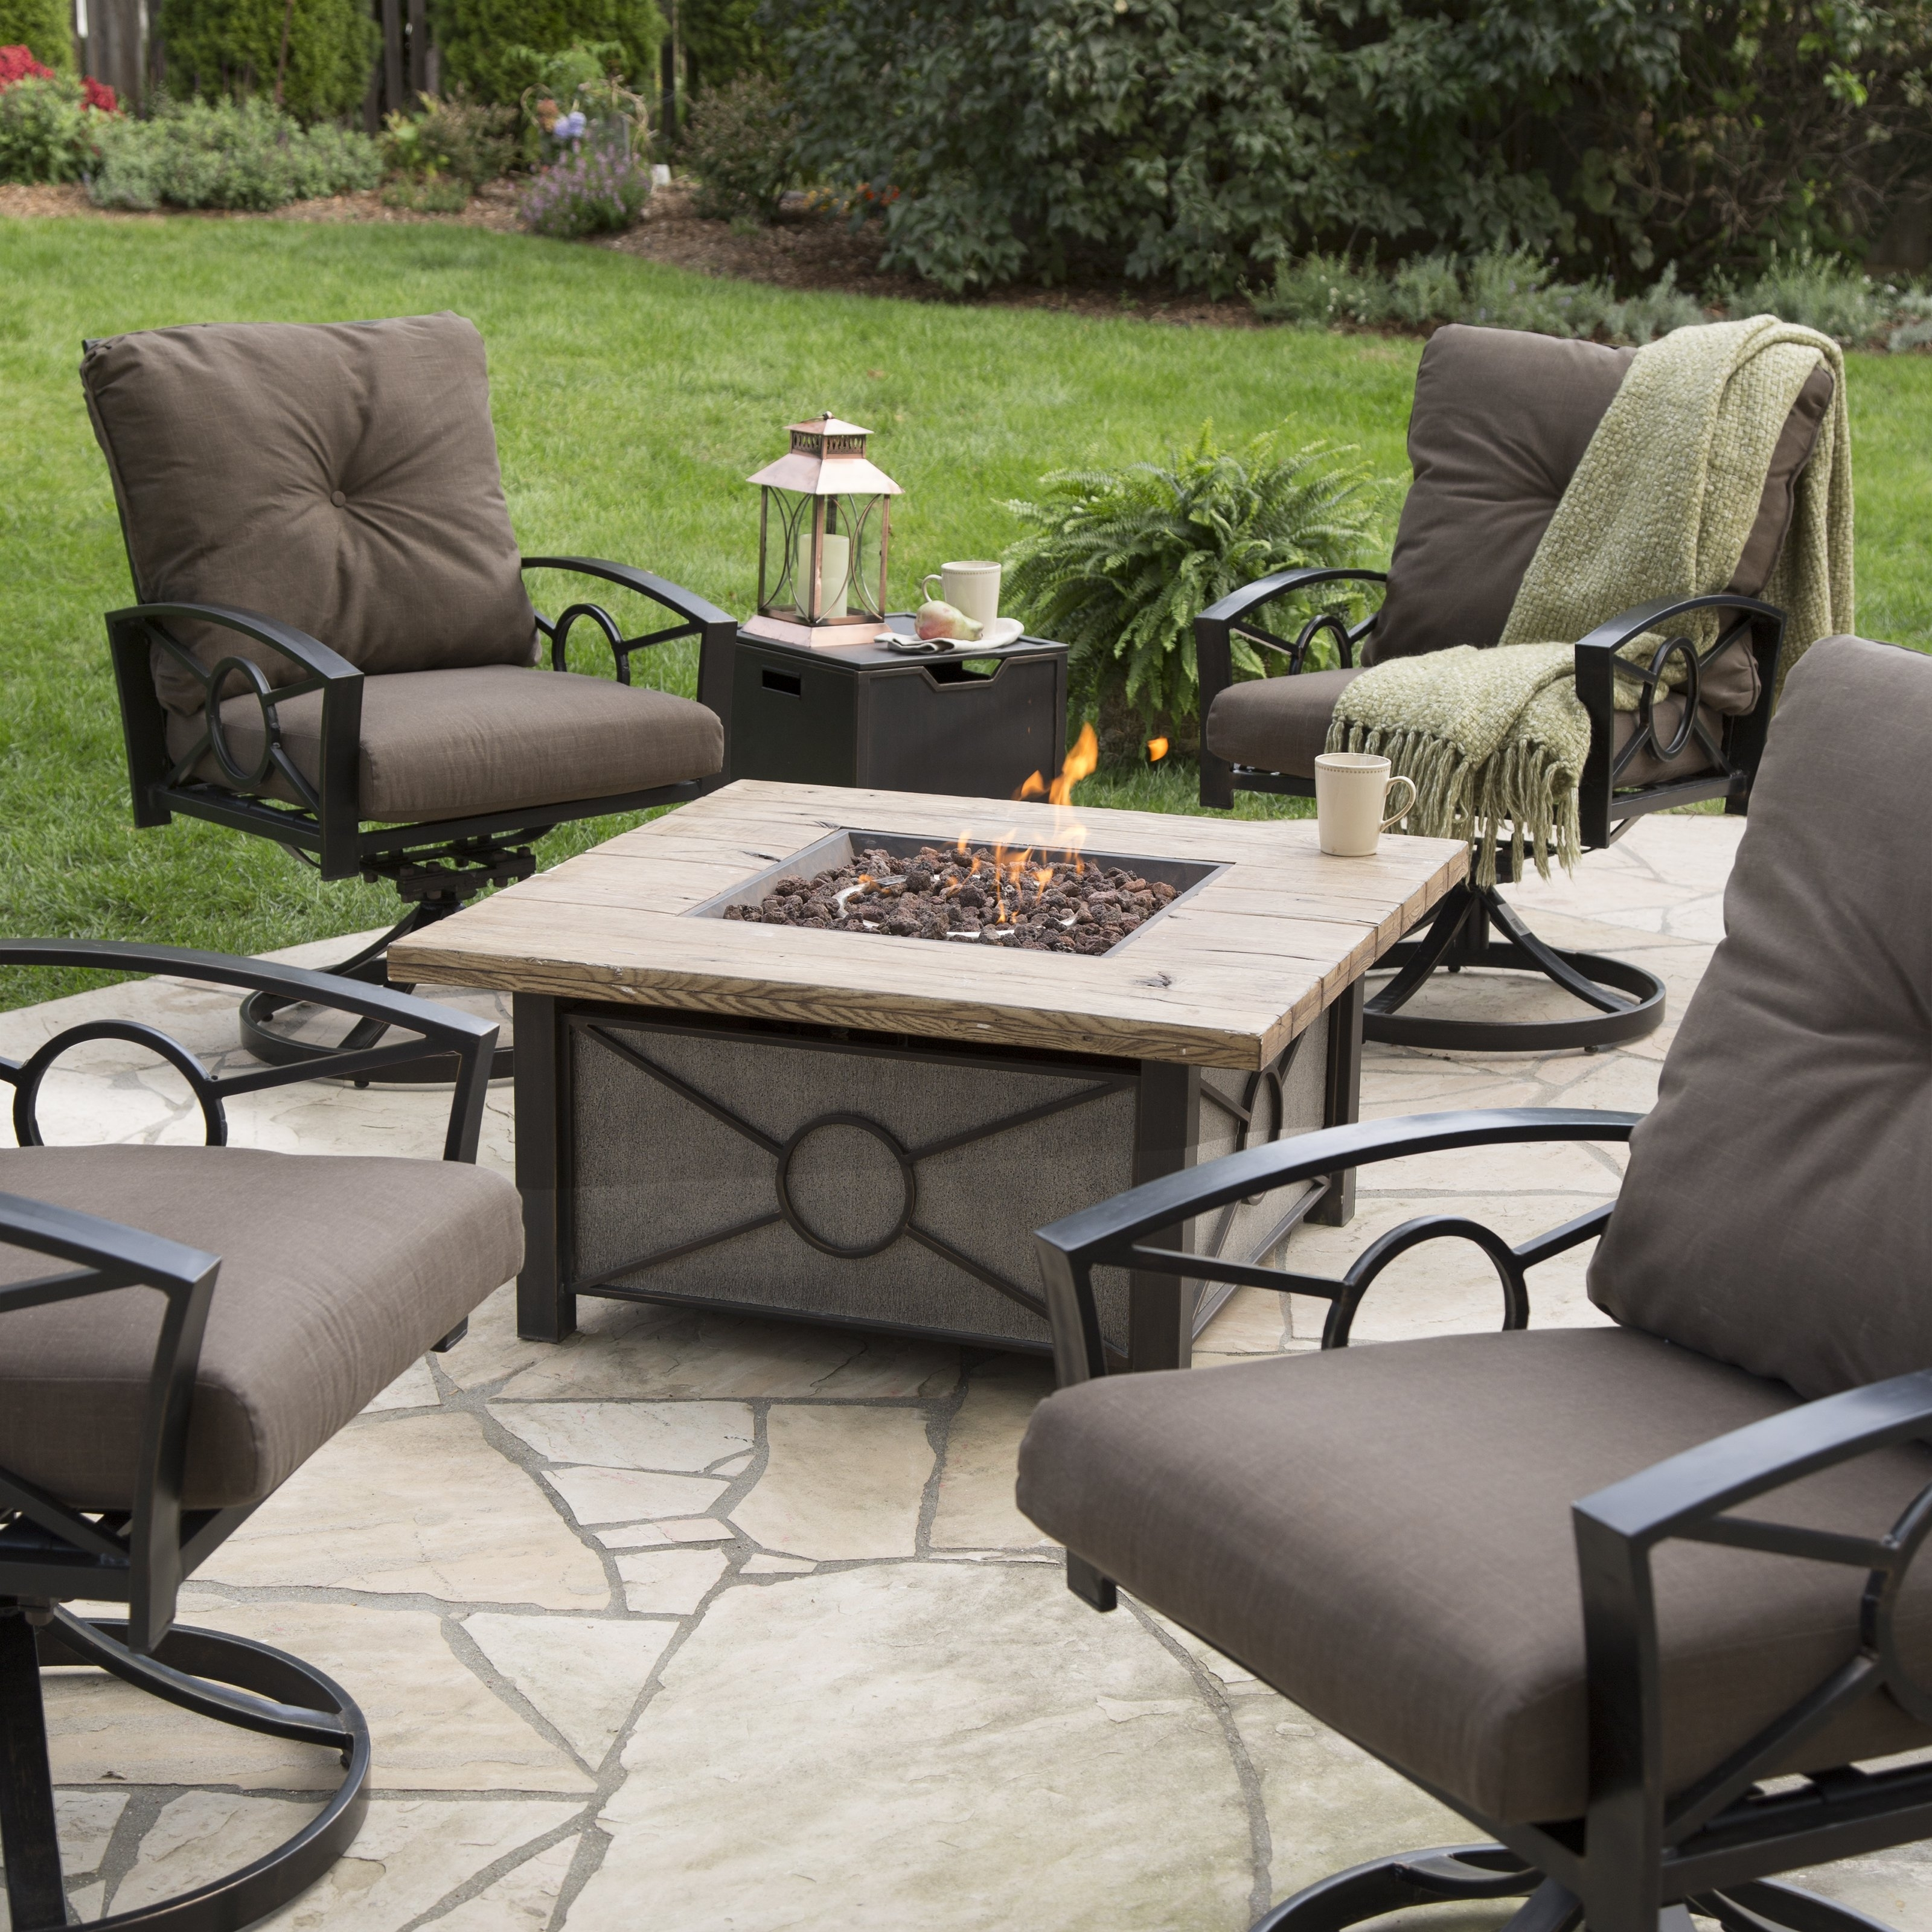 Most Popular Patio Conversation Sets Costco Wicker Conversation Set Target Patio Inside Patio Furniture Conversation Sets With Fire Pit (View 17 of 20)